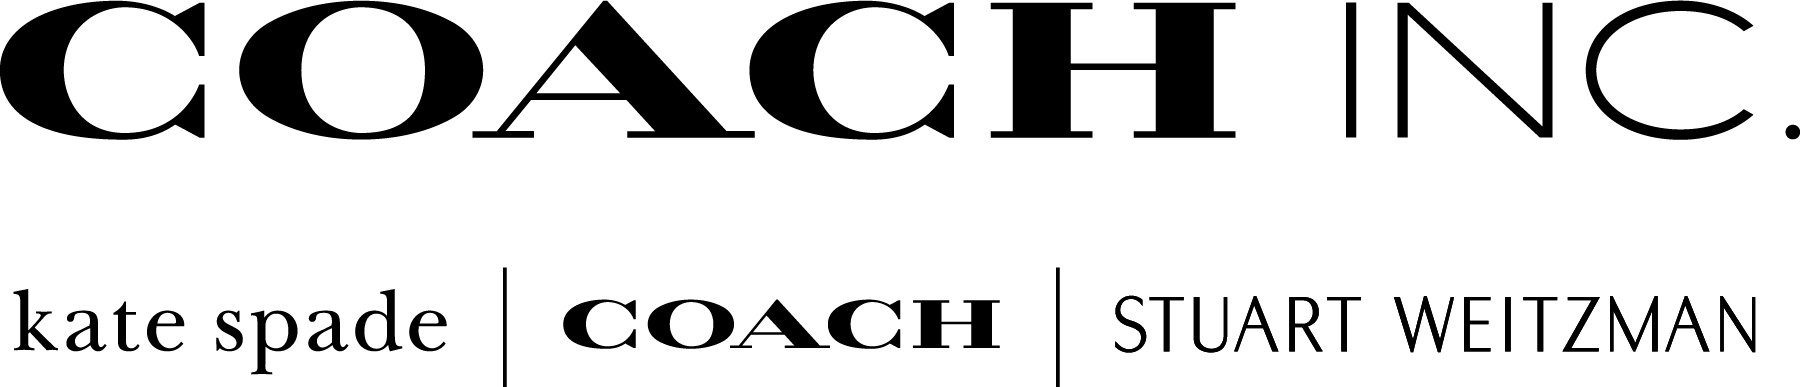 Coach Inc To Change Its Name To Tapestry Inc Business Wire